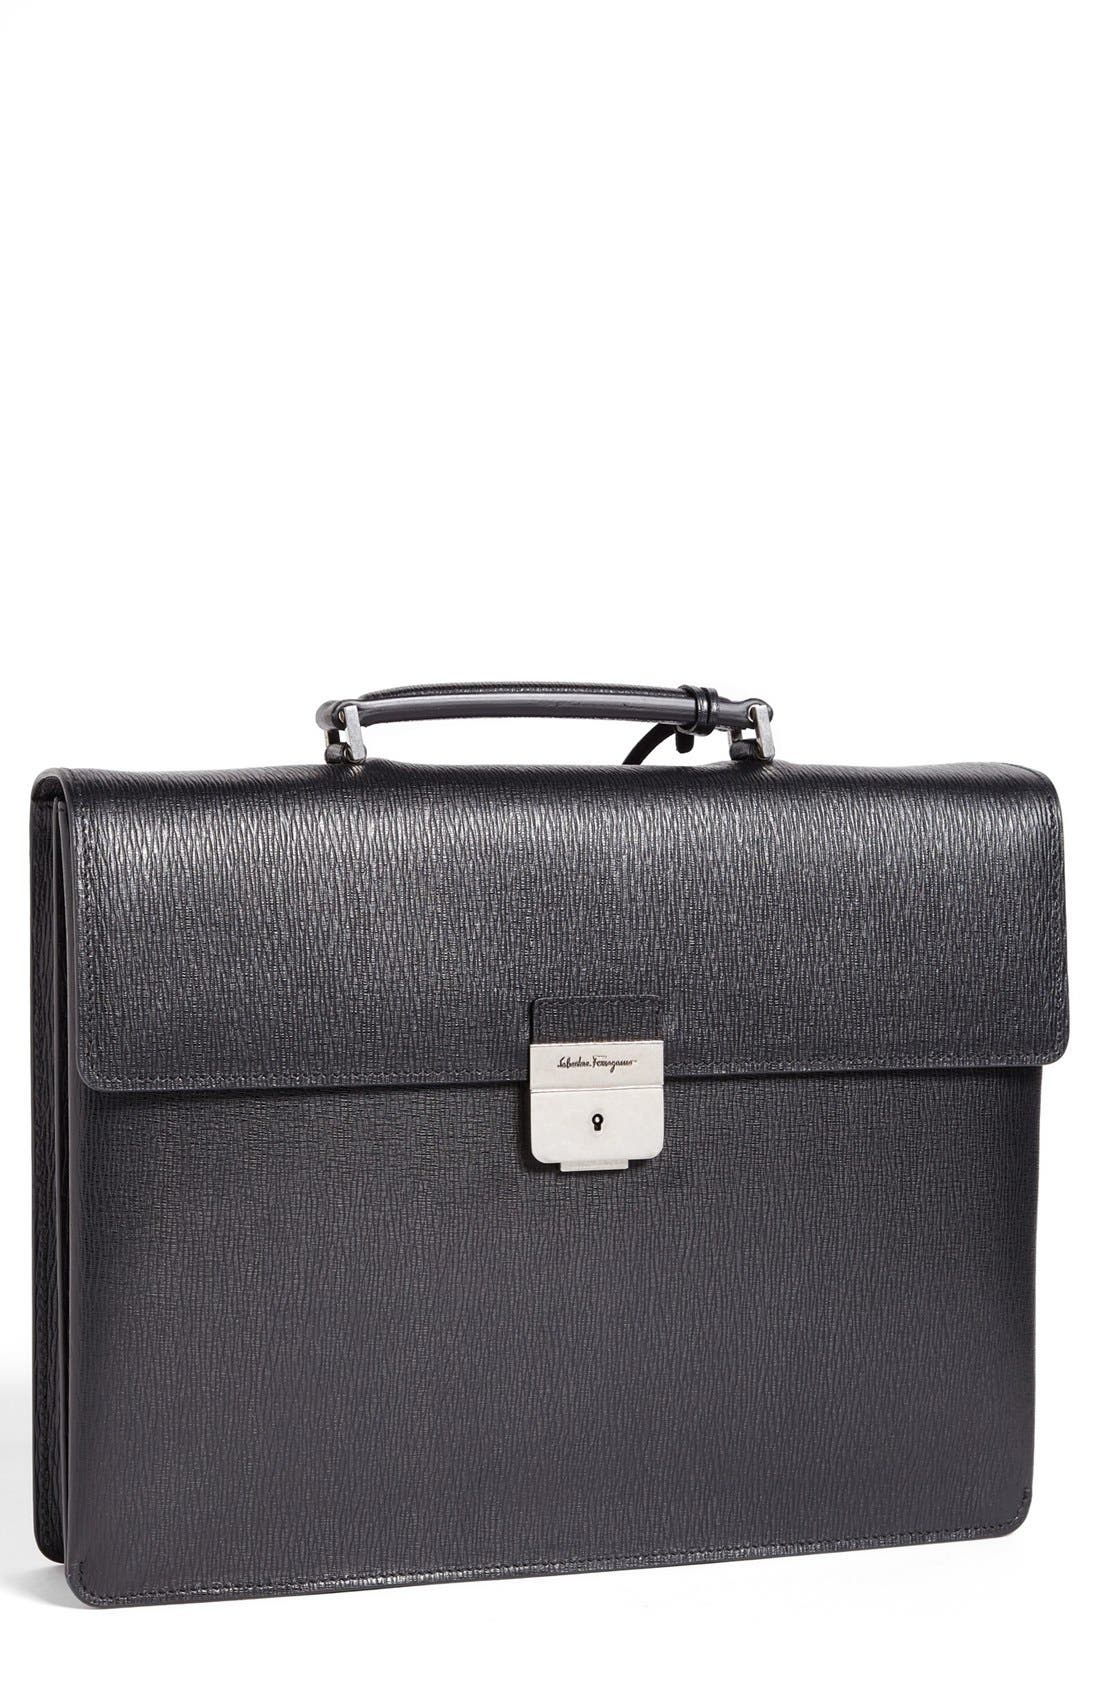 Alternate Image 1 Selected - Salvatore Ferragamo 'Revival' Briefcase